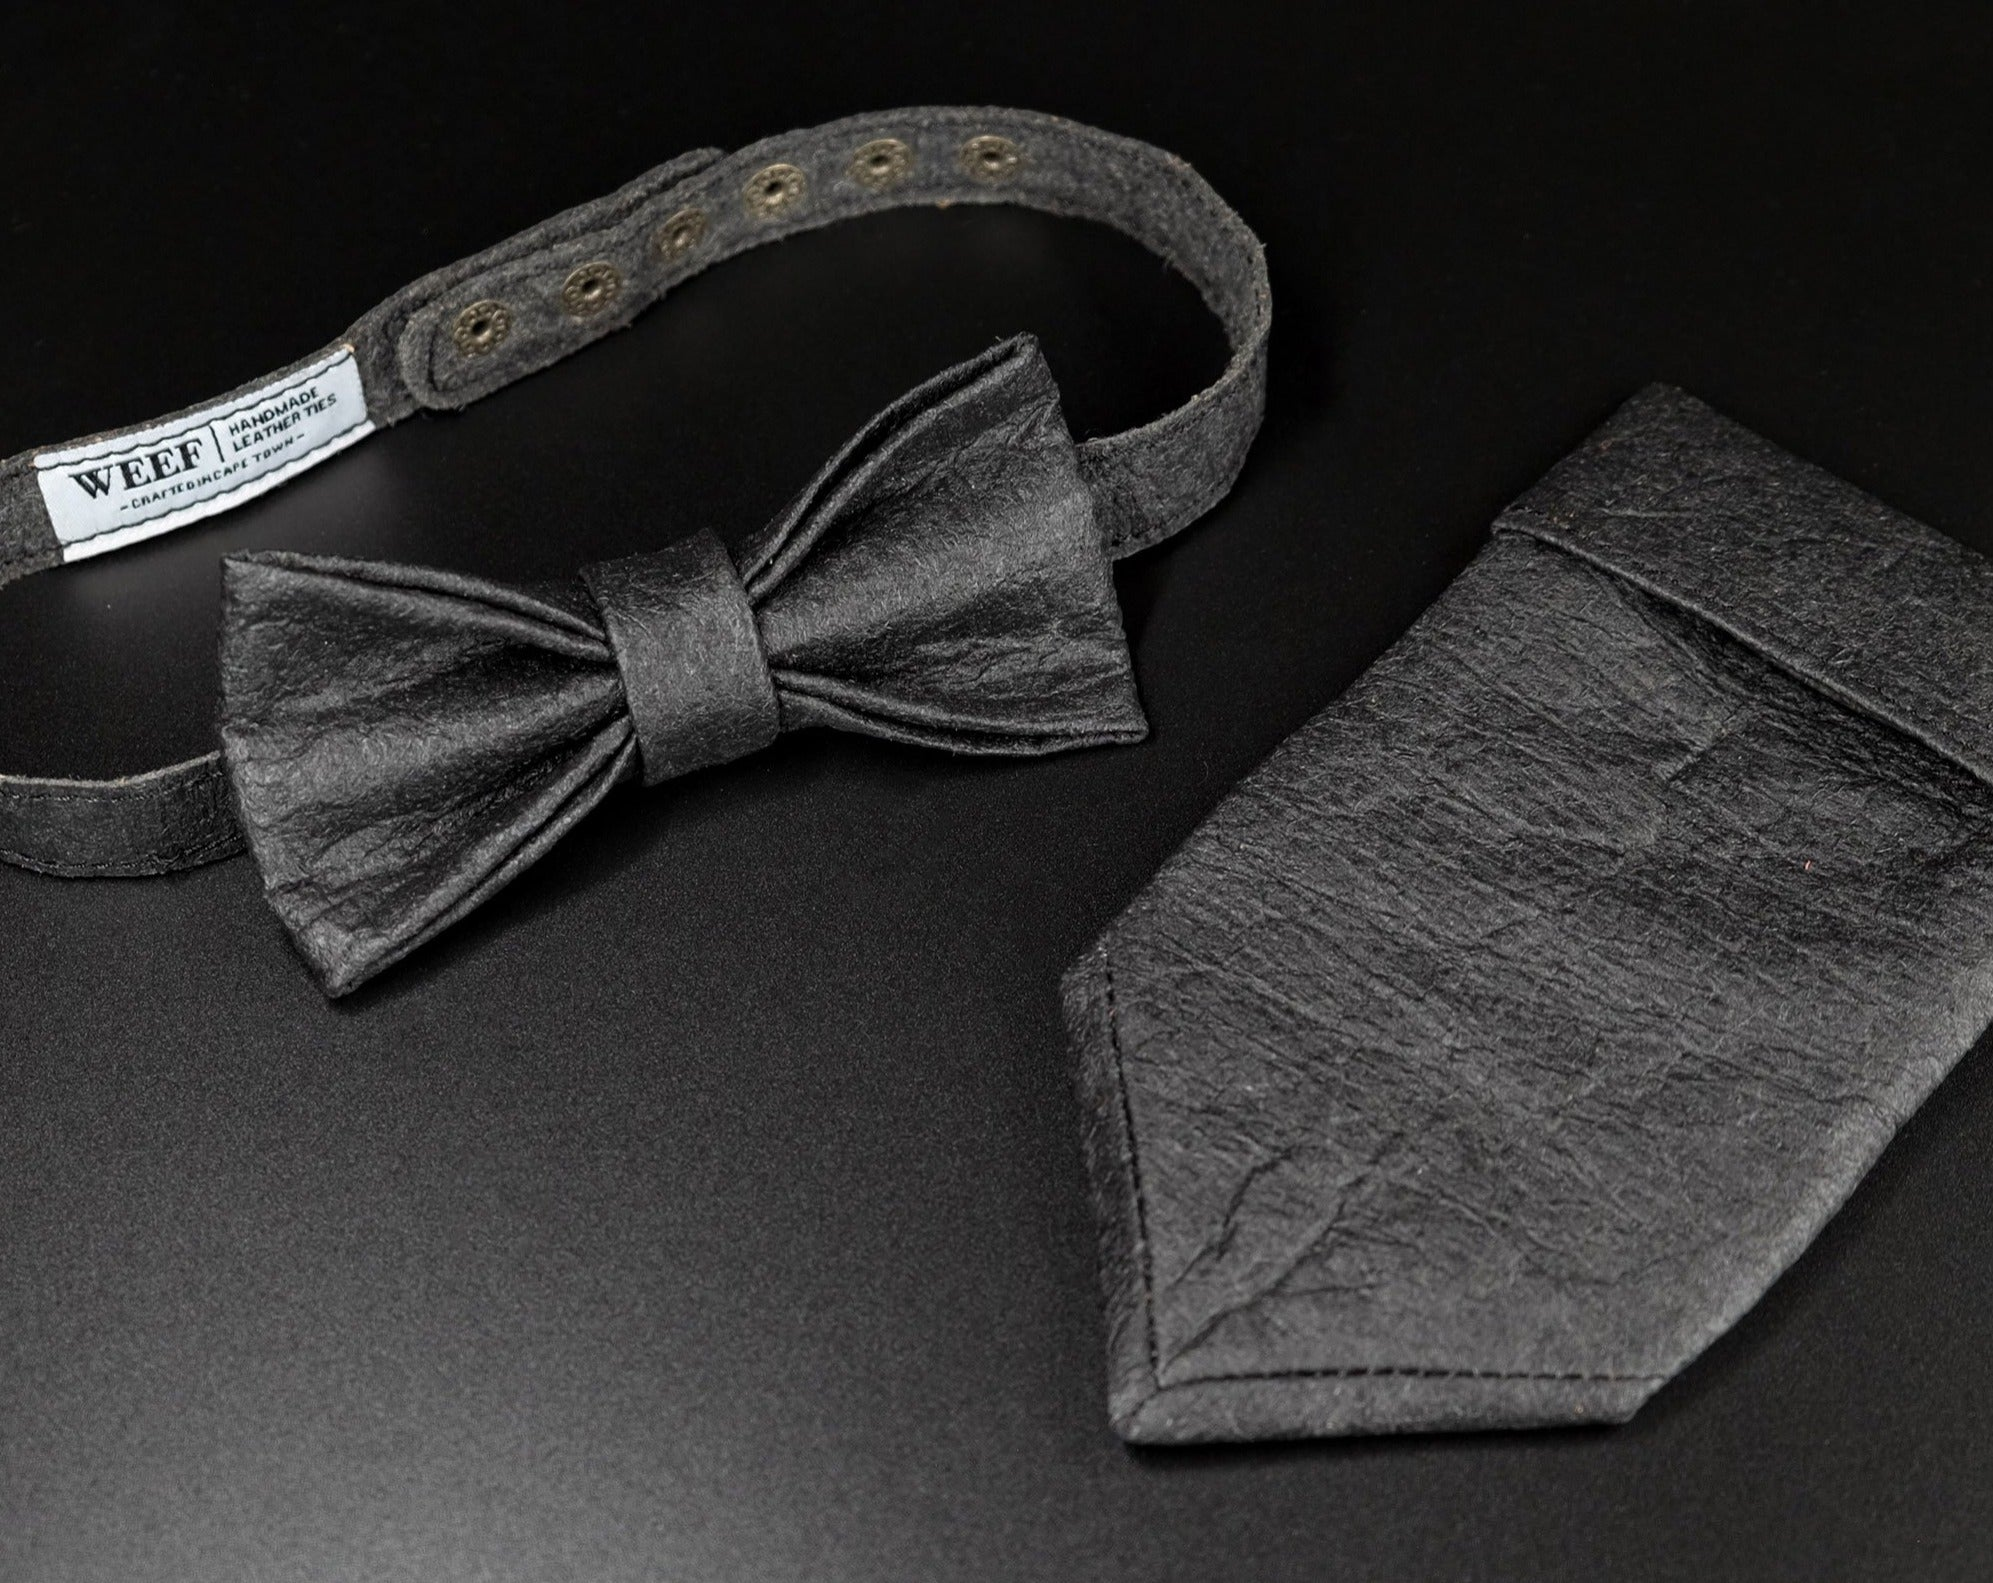 BOW TIE - Piñatex® Charcoal